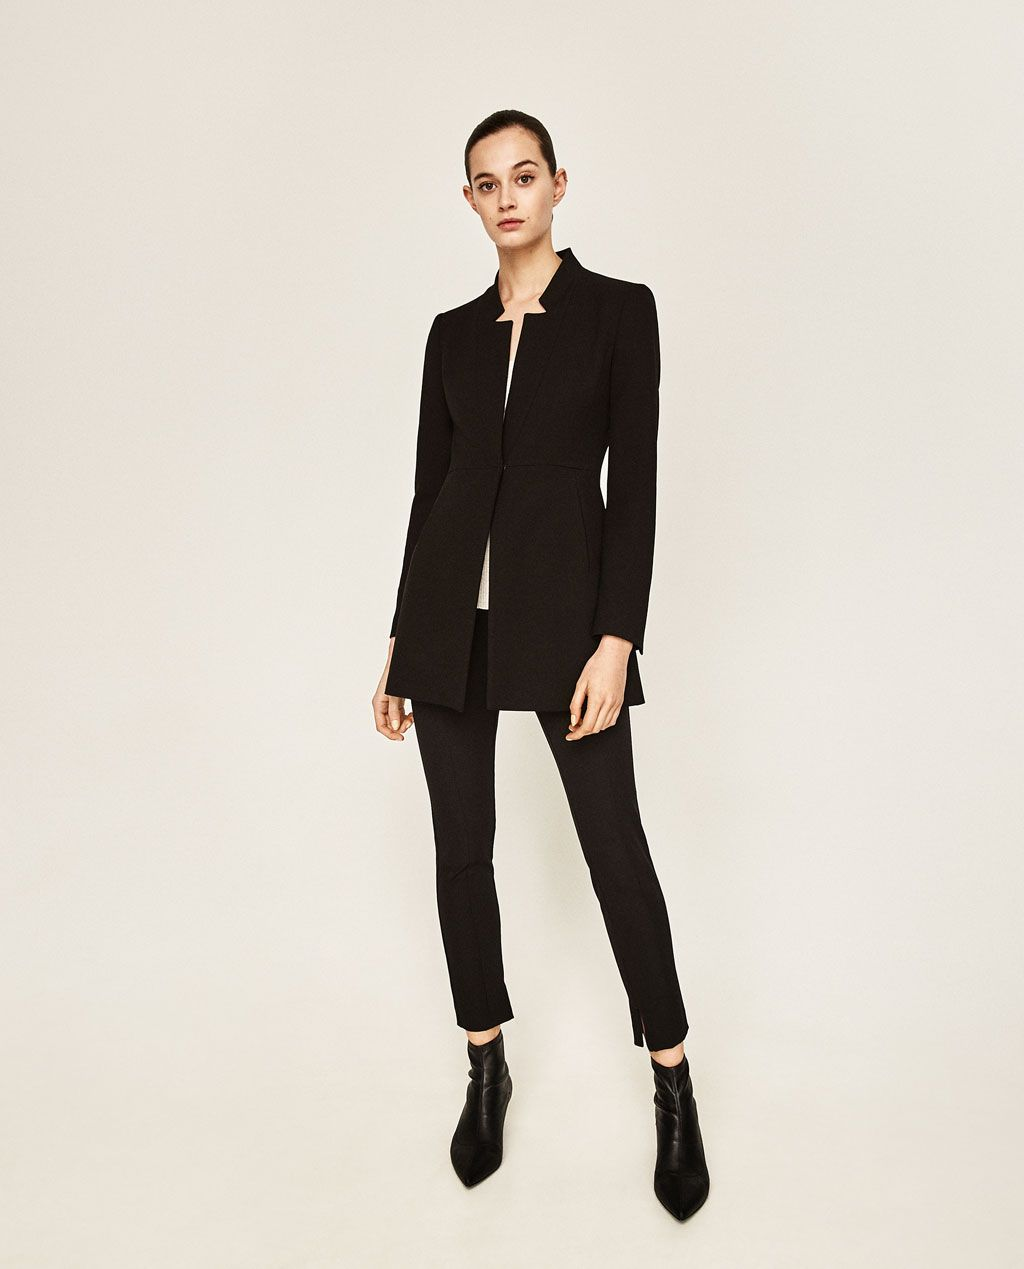 996c8e4dbe INVERTED LAPEL FROCK COAT-OUTERWEAR-WOMAN-COLLECTION SS/17 | ZARA ...